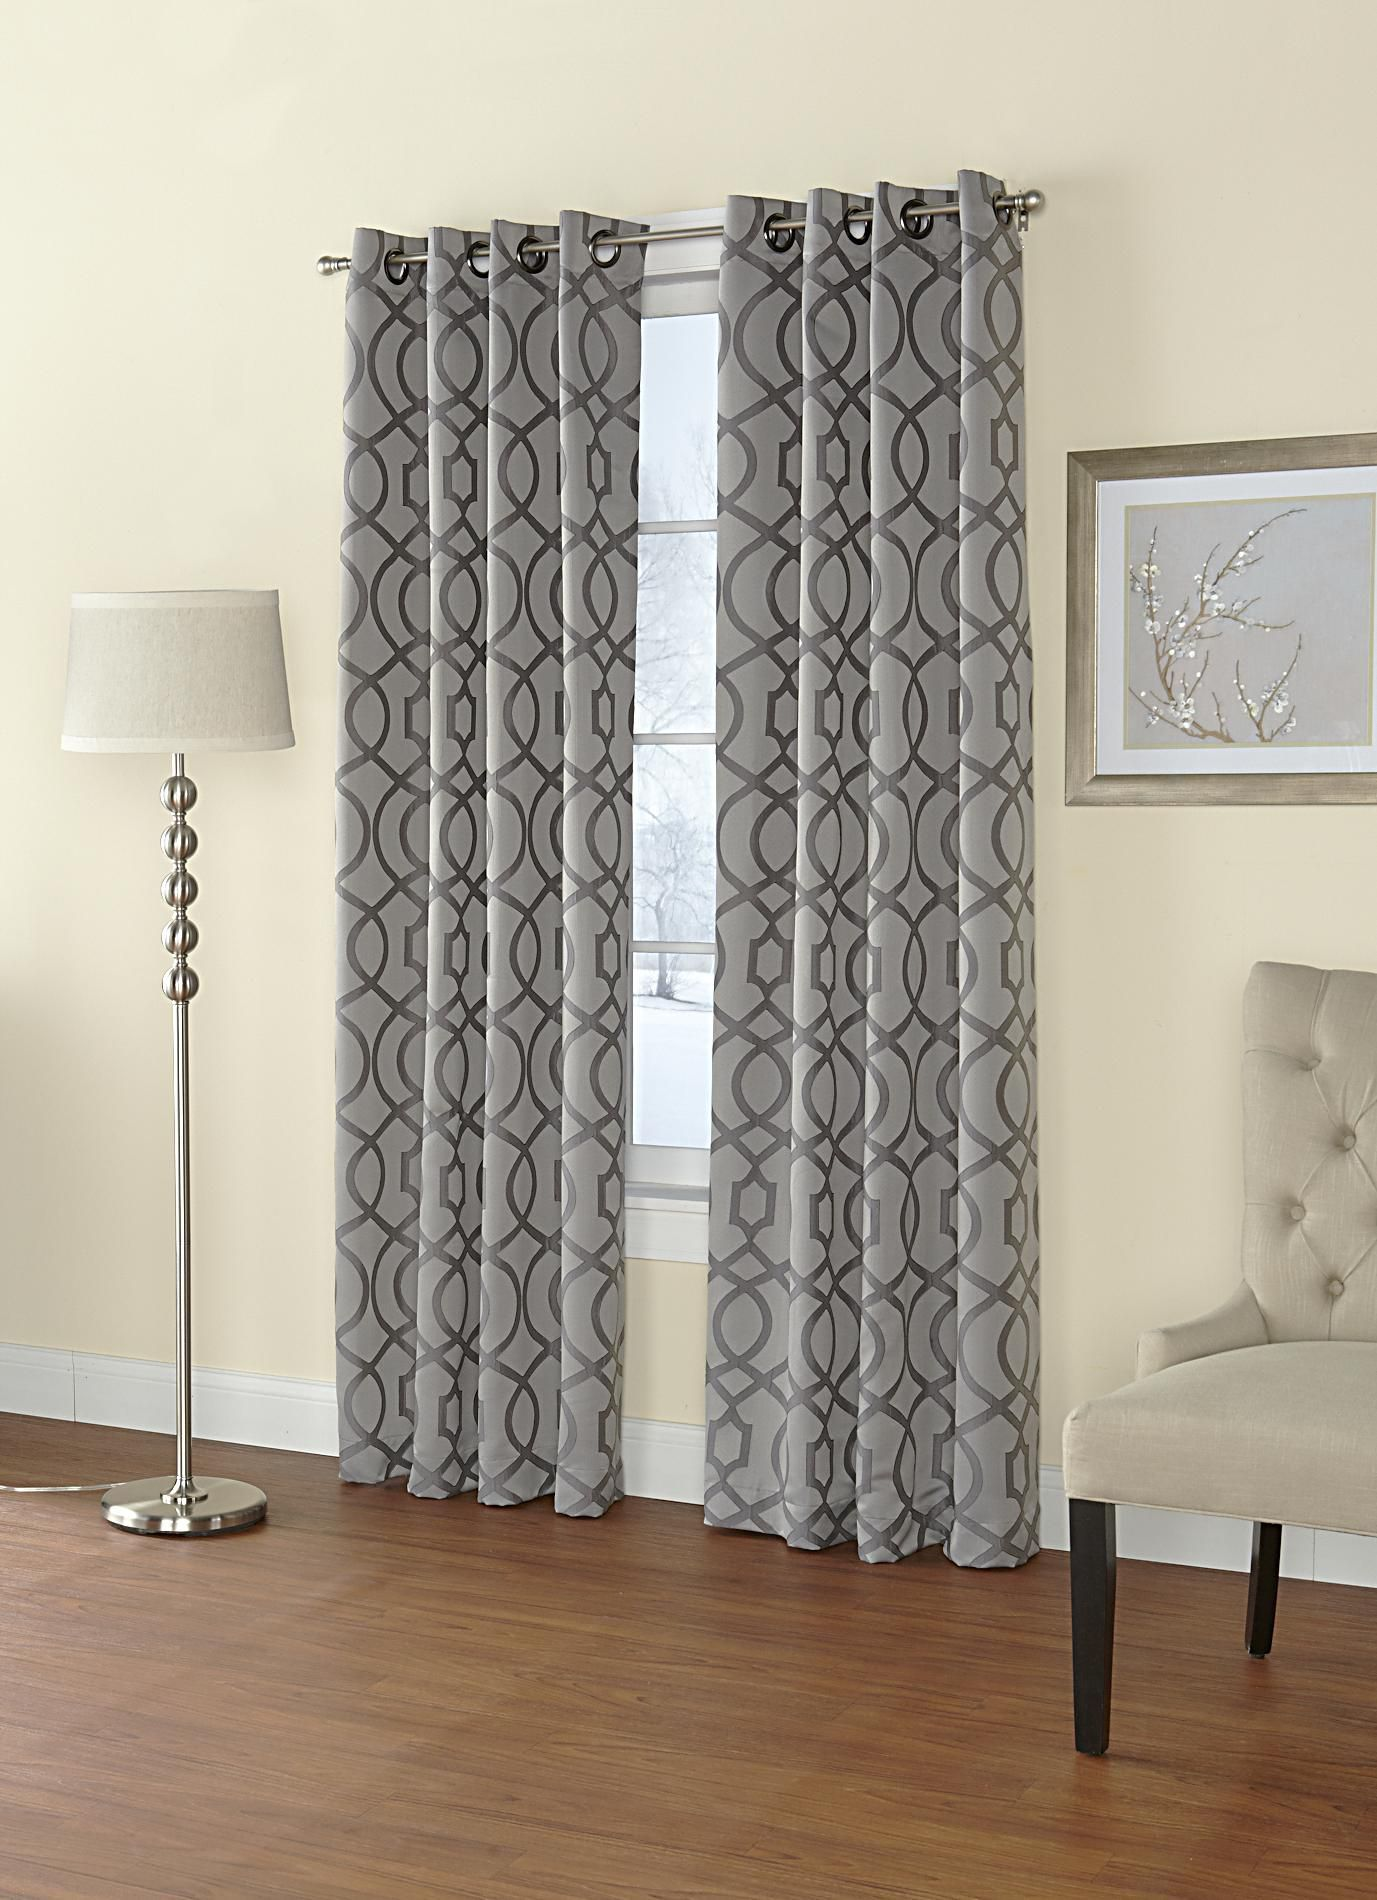 Sears Bedroom Curtains